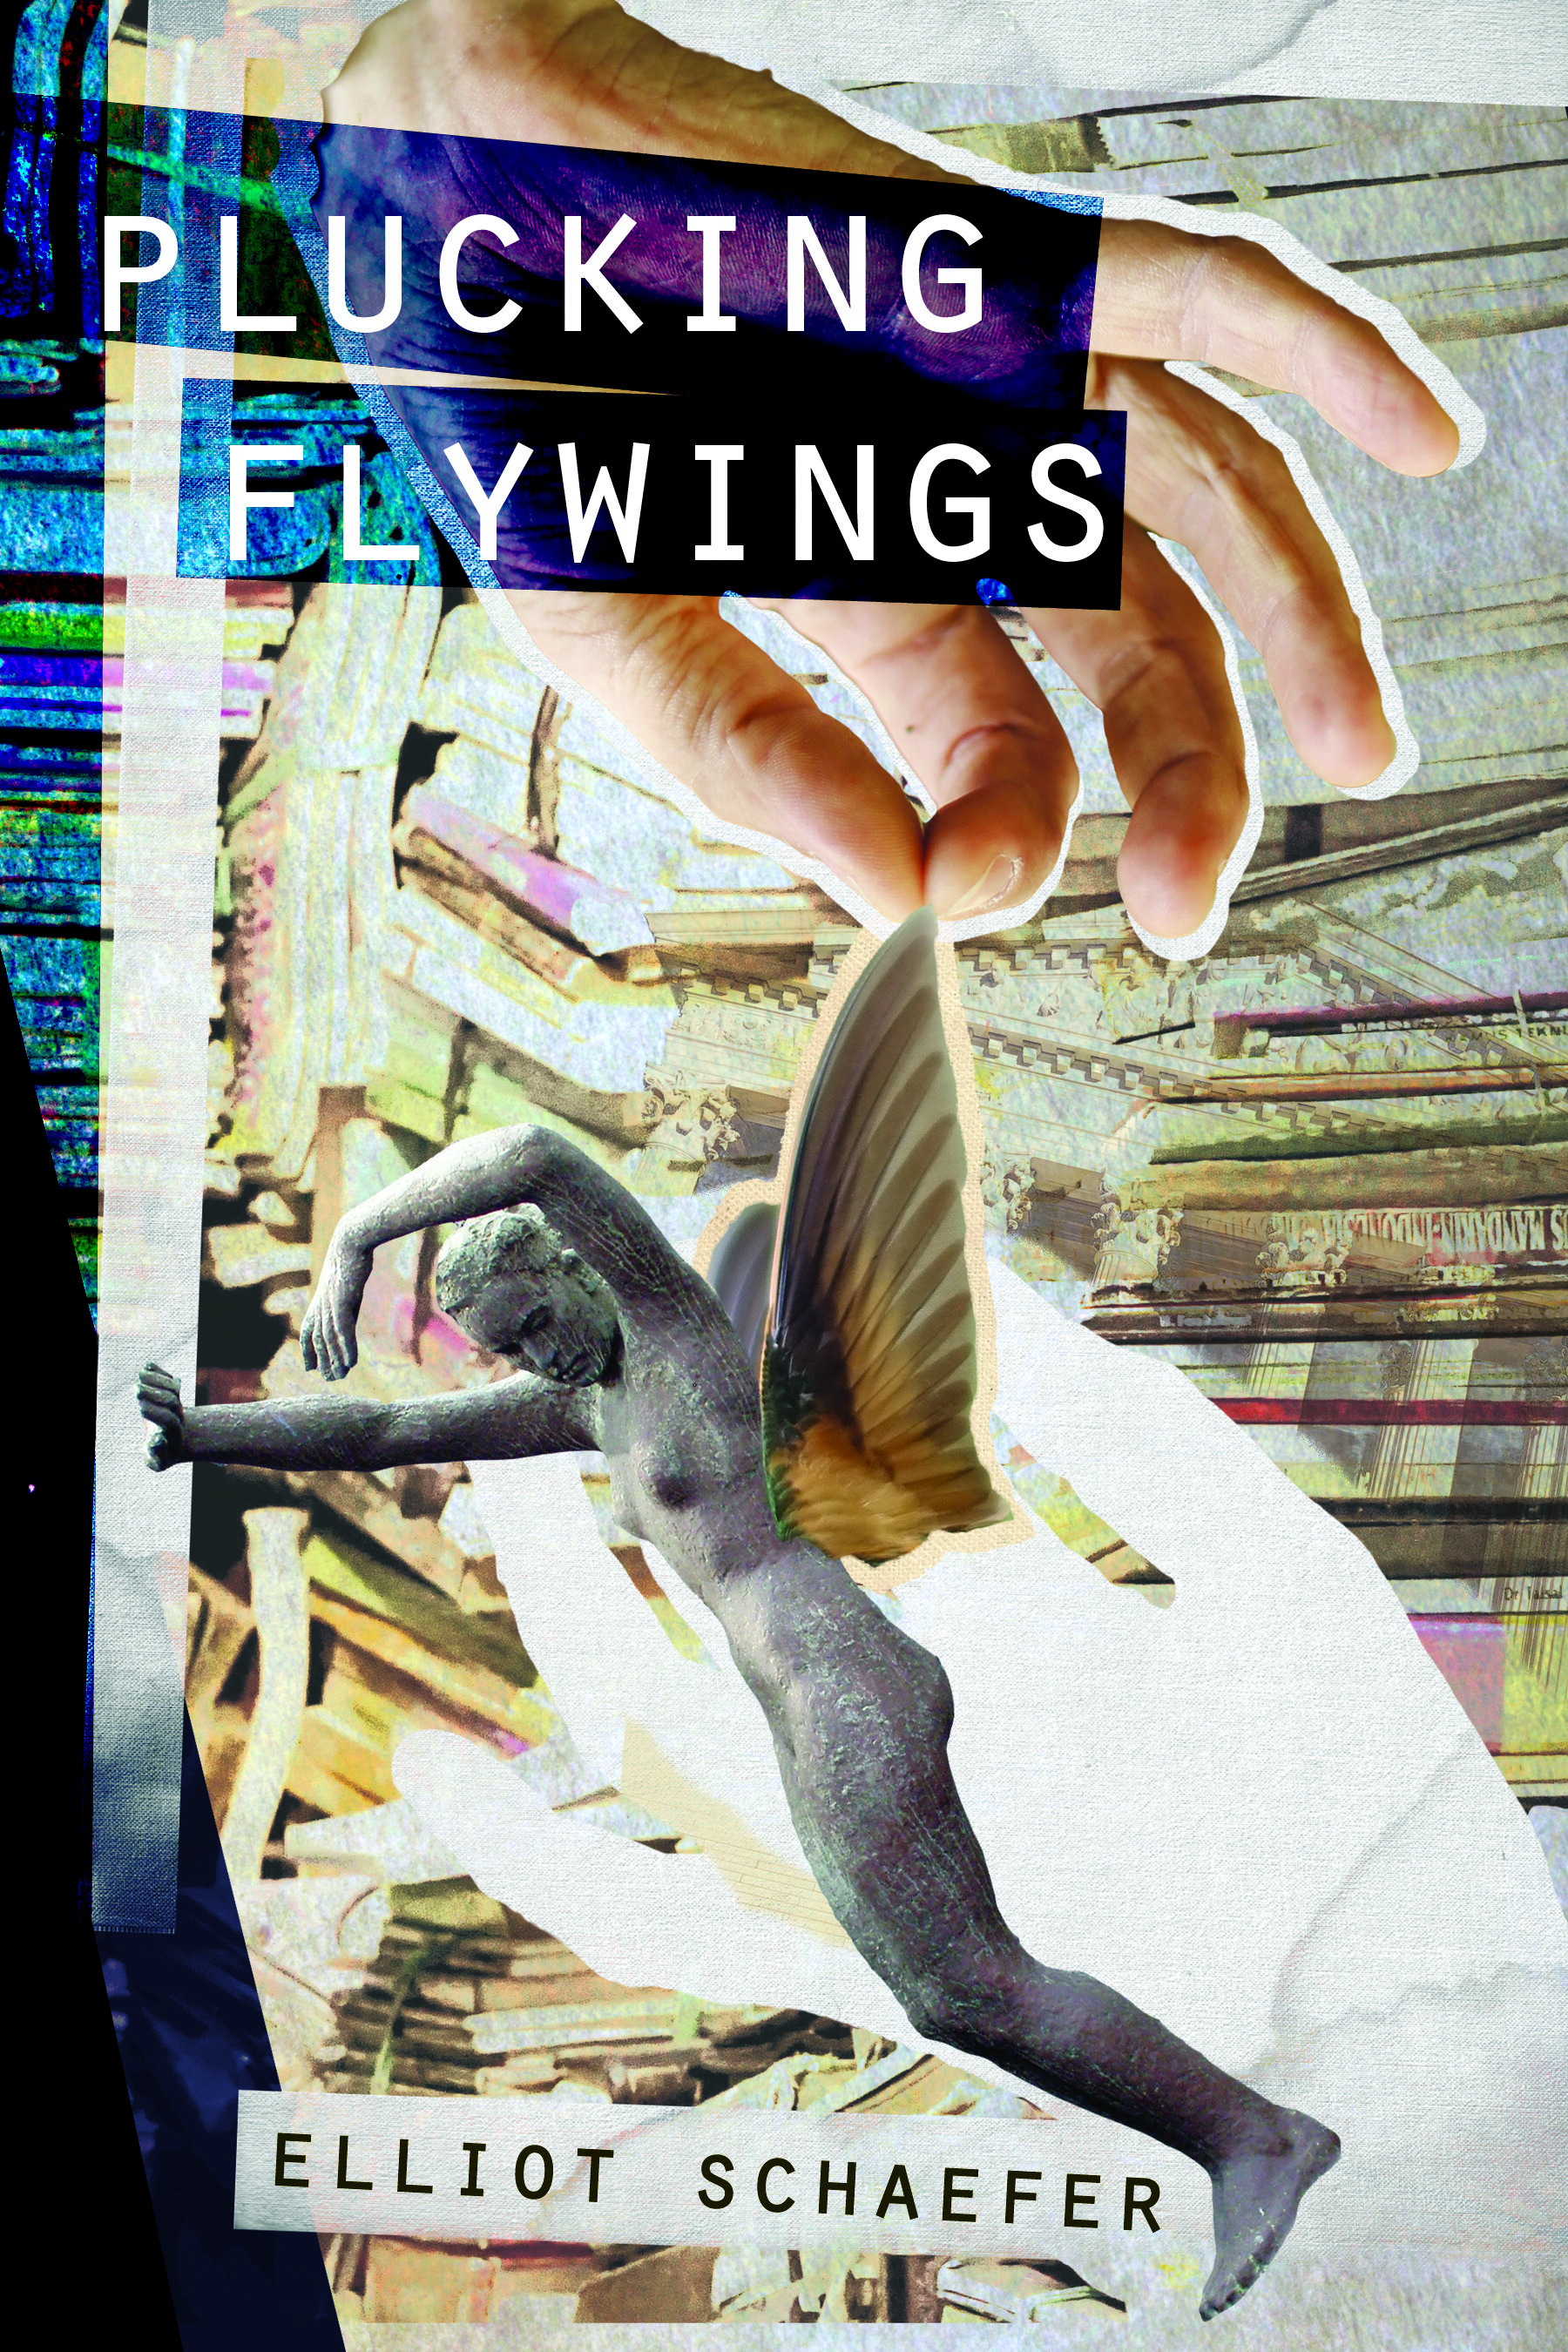 PluckingFlywings.jpg